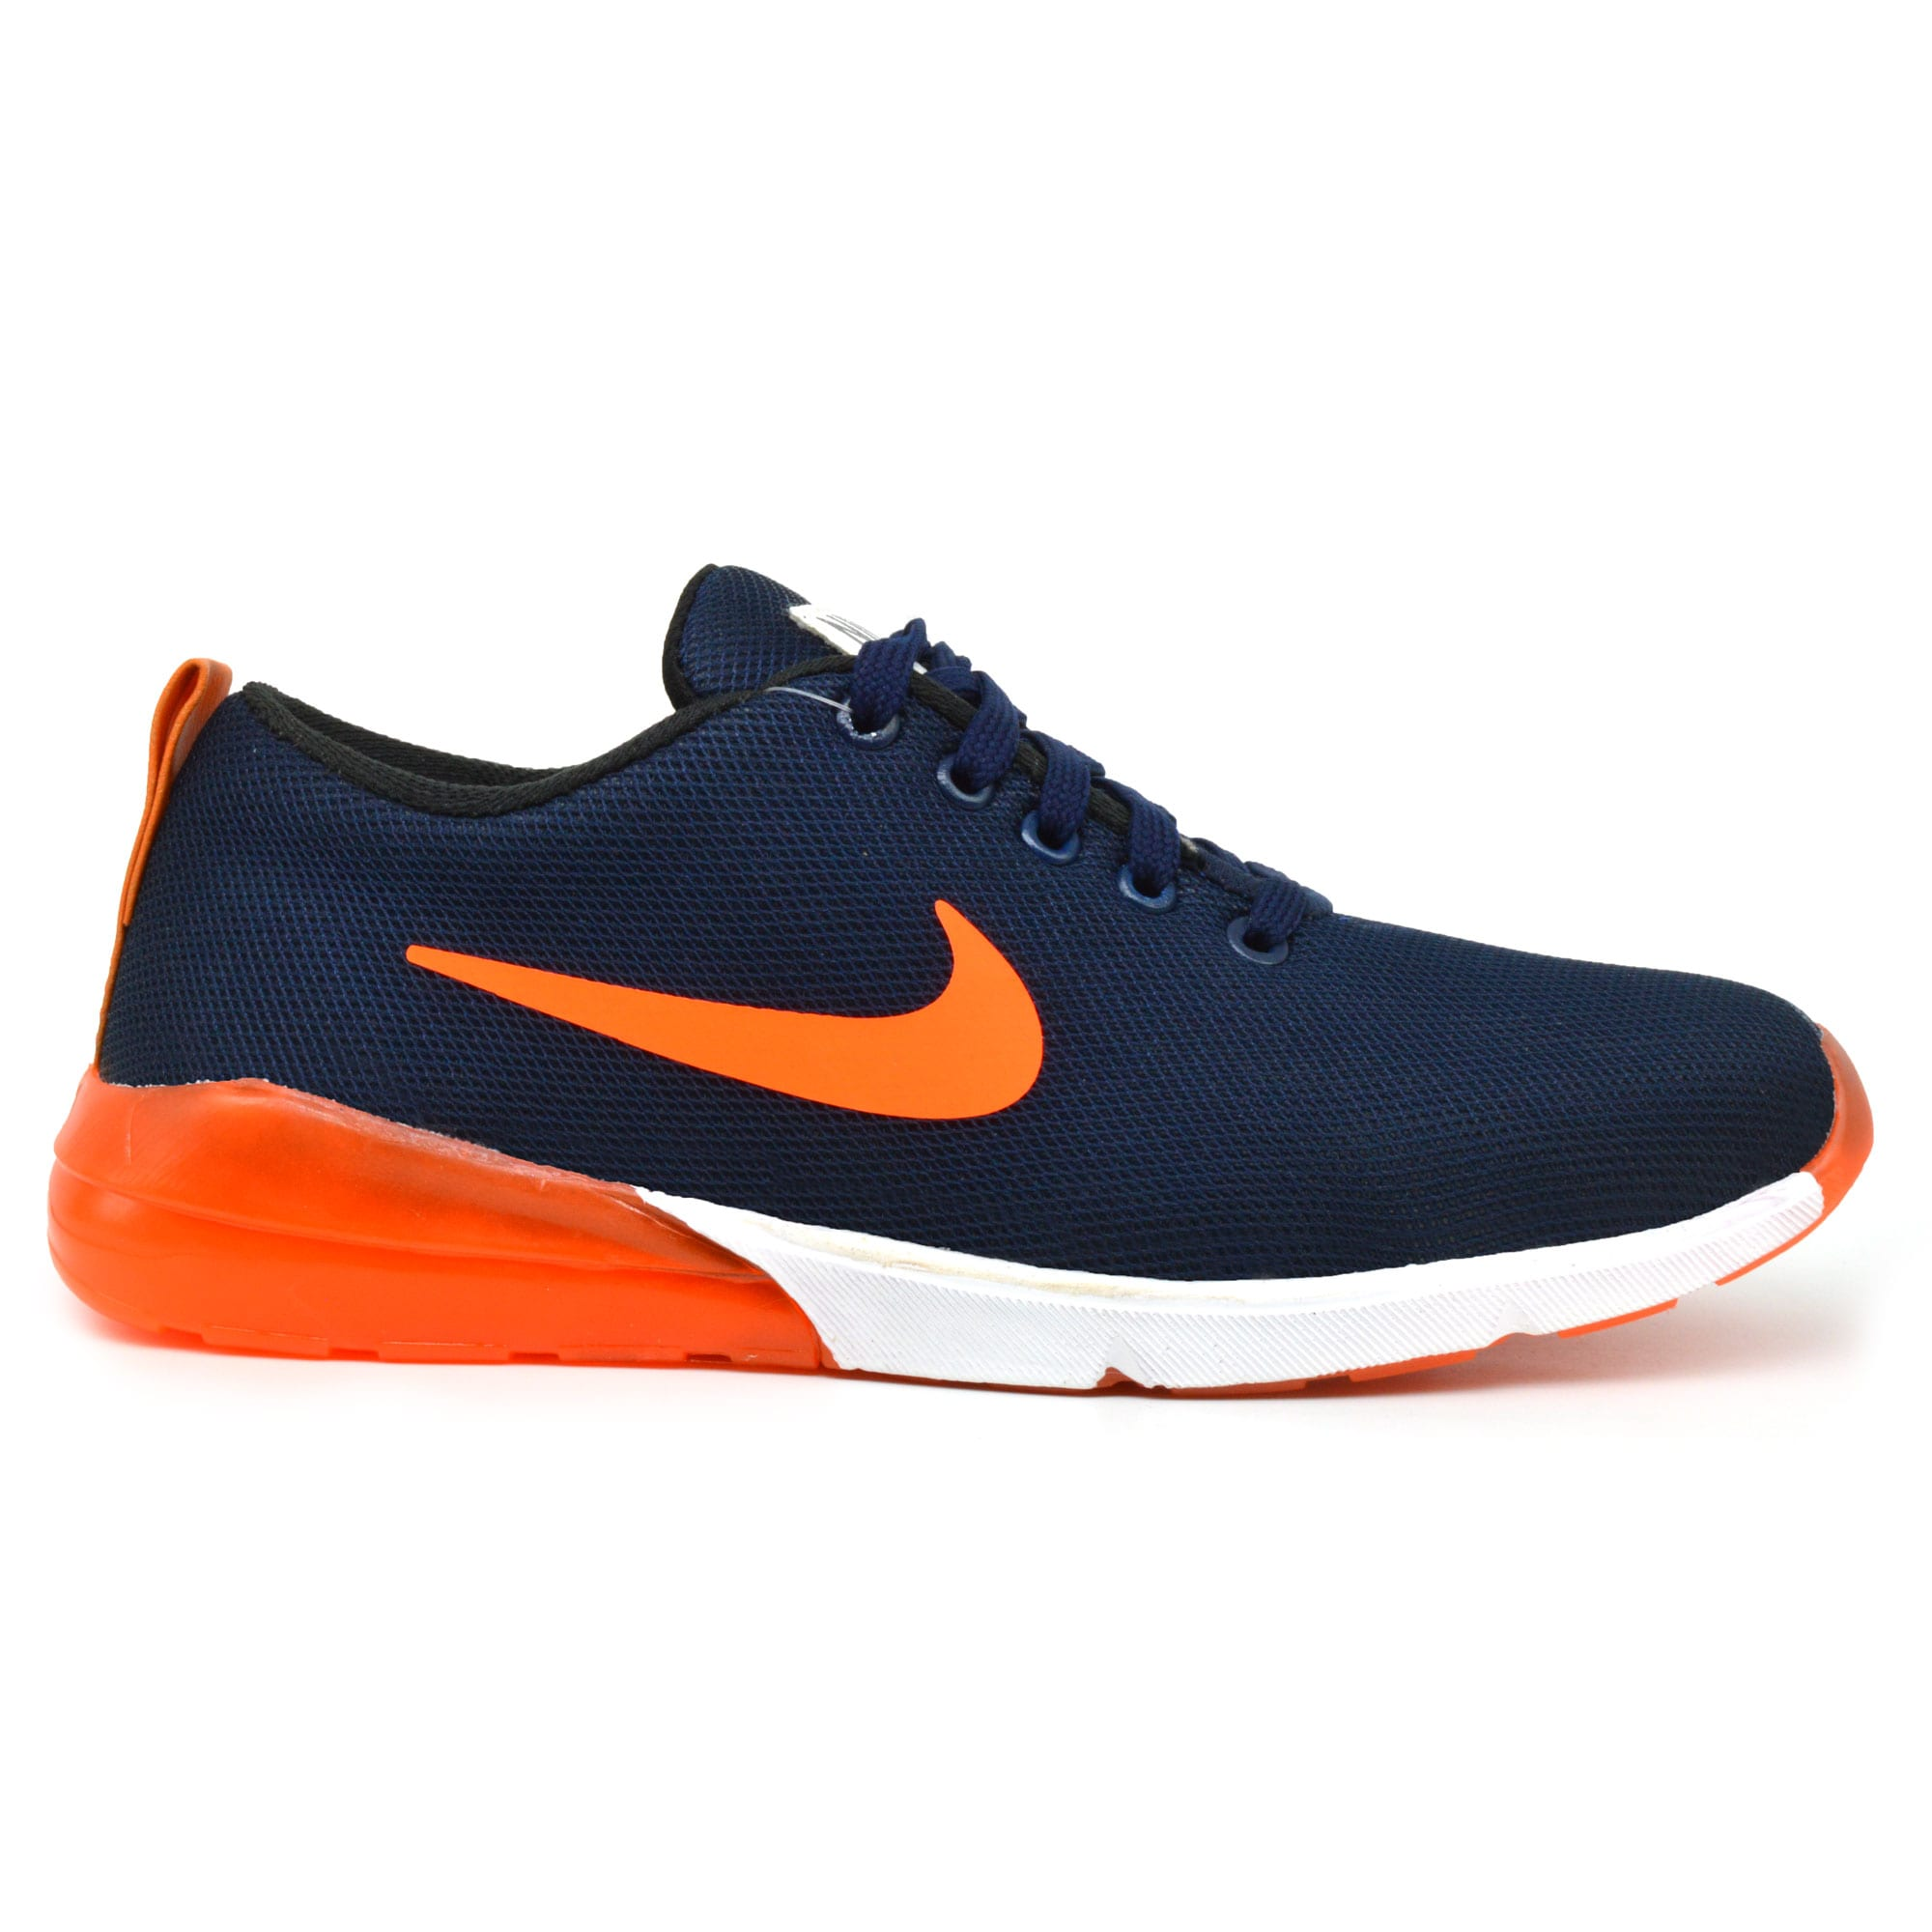 IMCOLUS13.89_NAVYBLUE  OUTDOOR WEAR & FLEXIBLE MENS Sports Shoes SHOES  IMCOLUS13.89NAVYBLUE (NAVYBLUE,6TO10,8 PAIR)